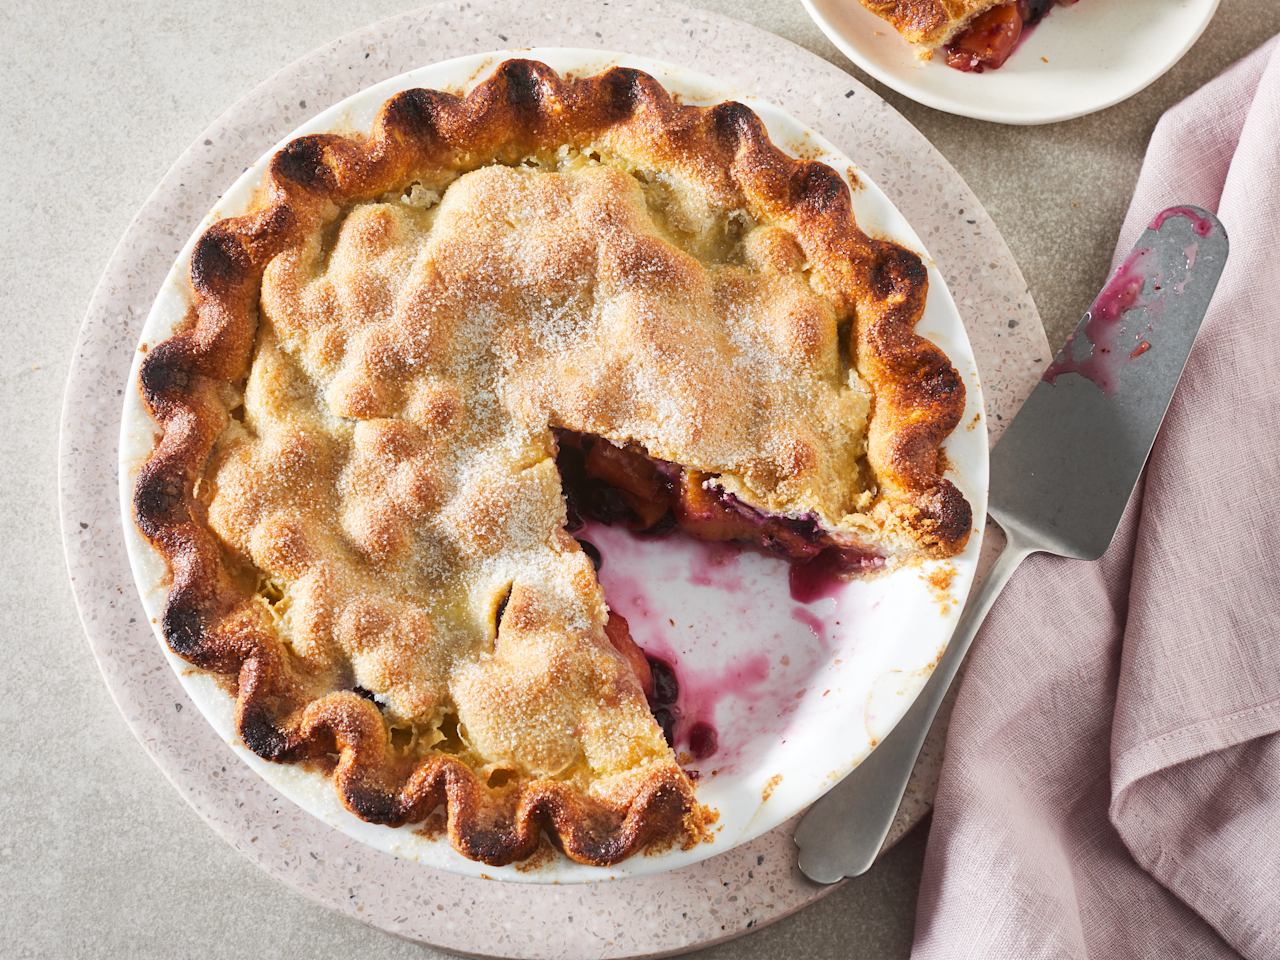 """<p>Two of summer's best crops unite to form a classic dessert you'll want to bring to every cookout. Our Peach Blueberry Pie is sweet and fruity with a flaky crust. Using parchment paper in the oven will help catch any drippage. Truthfully, fruit pies are something that should be made a day ahead, and the longer this cools, the lower your chances of an overly juicy pie. If you have a pizza stone, use that instead of a baking sheet to aid the cooling process. Serve for dessert with vanilla ice cream, or at breakfast with a scoop of yogurt and a coffee.</p> <p><a href=""""https://www.myrecipes.com/recipe/peach-blueberry-pie"""">Peach Blueberry Pie Recipe</a></p>"""